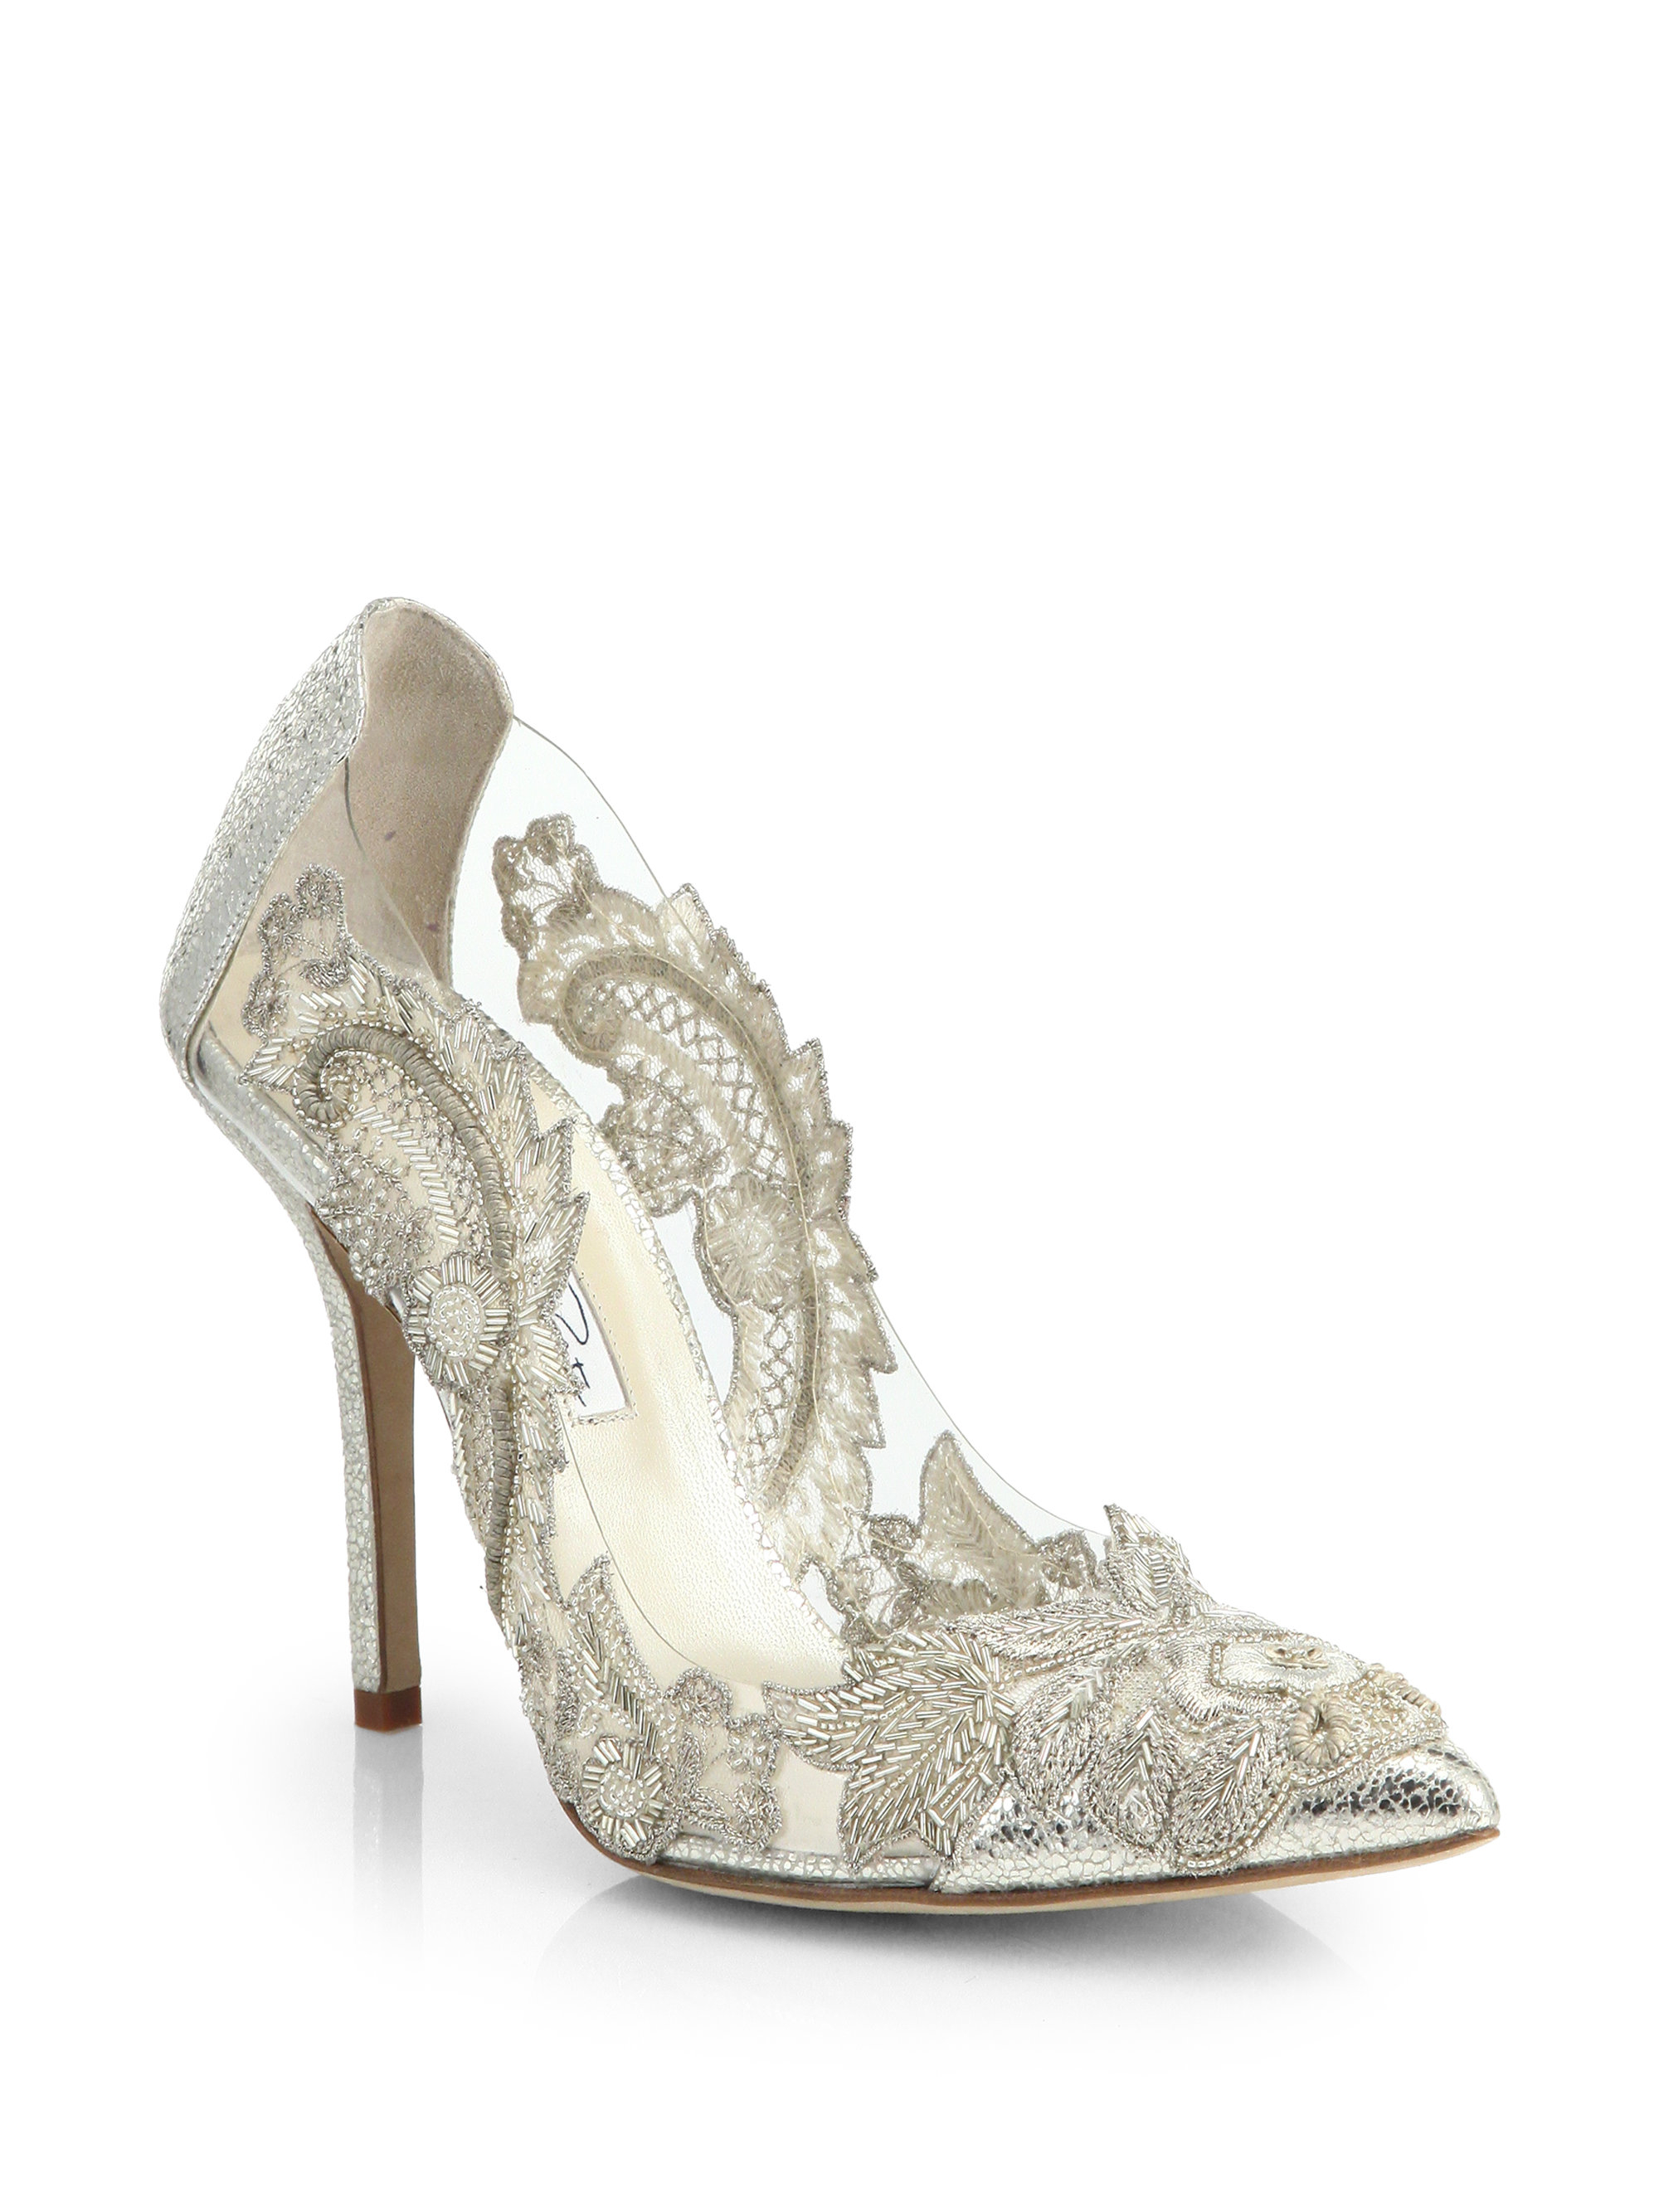 6564d0a7f33c Lyst - Oscar de la Renta Alyssa Beaded-appliqué   Metallic Leather ...